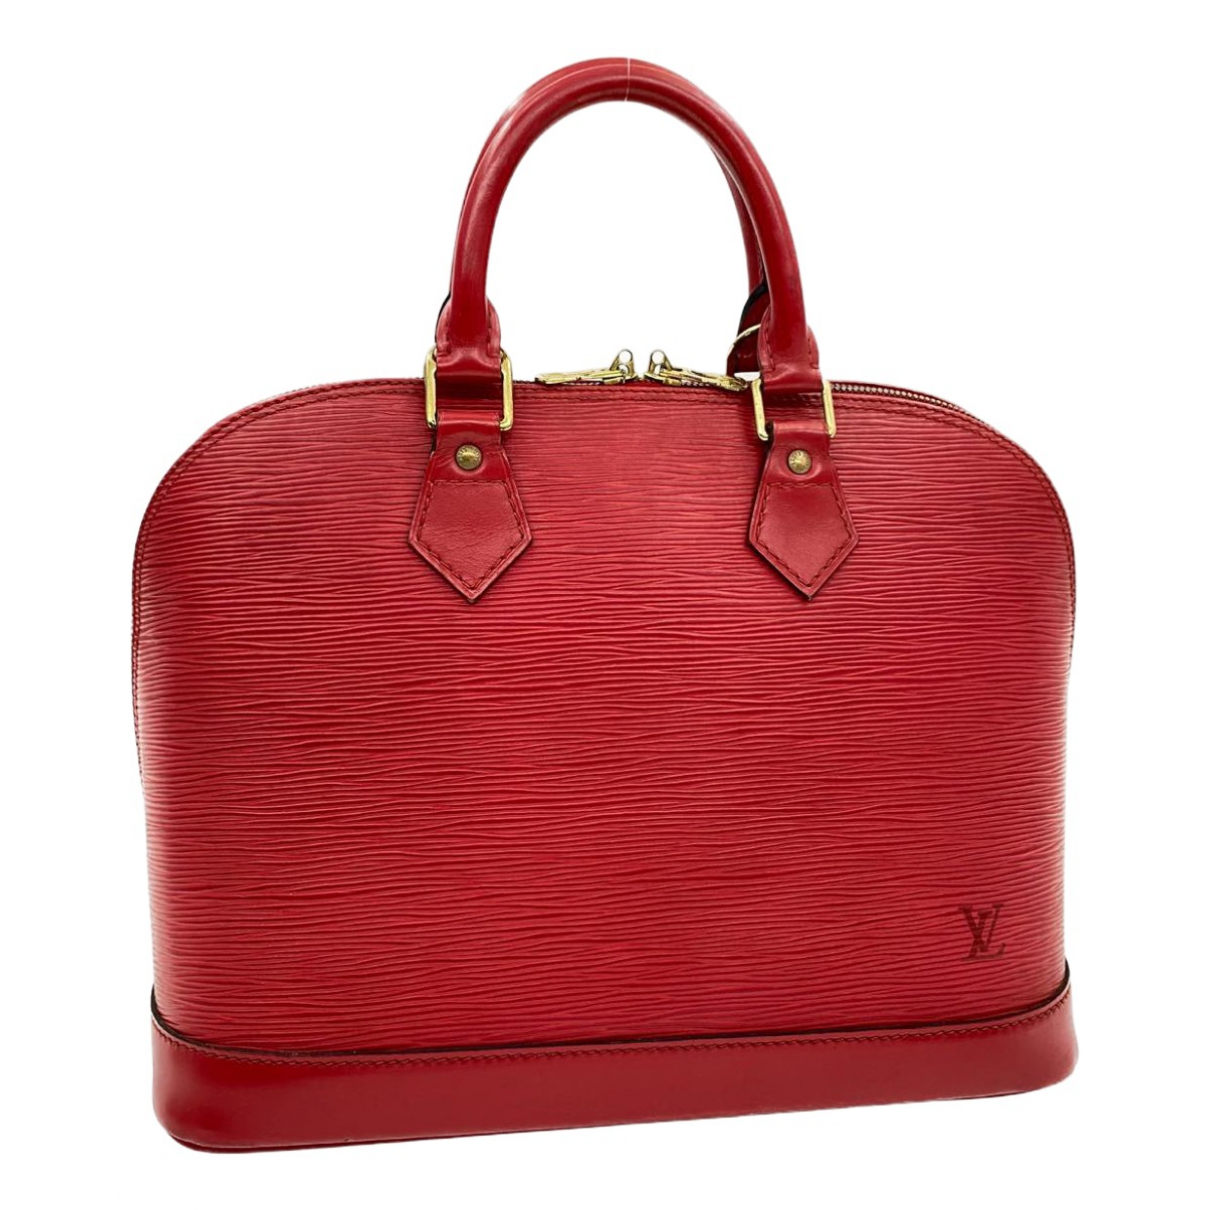 Louis Vuitton Alma Red Leather handbag for Women \N